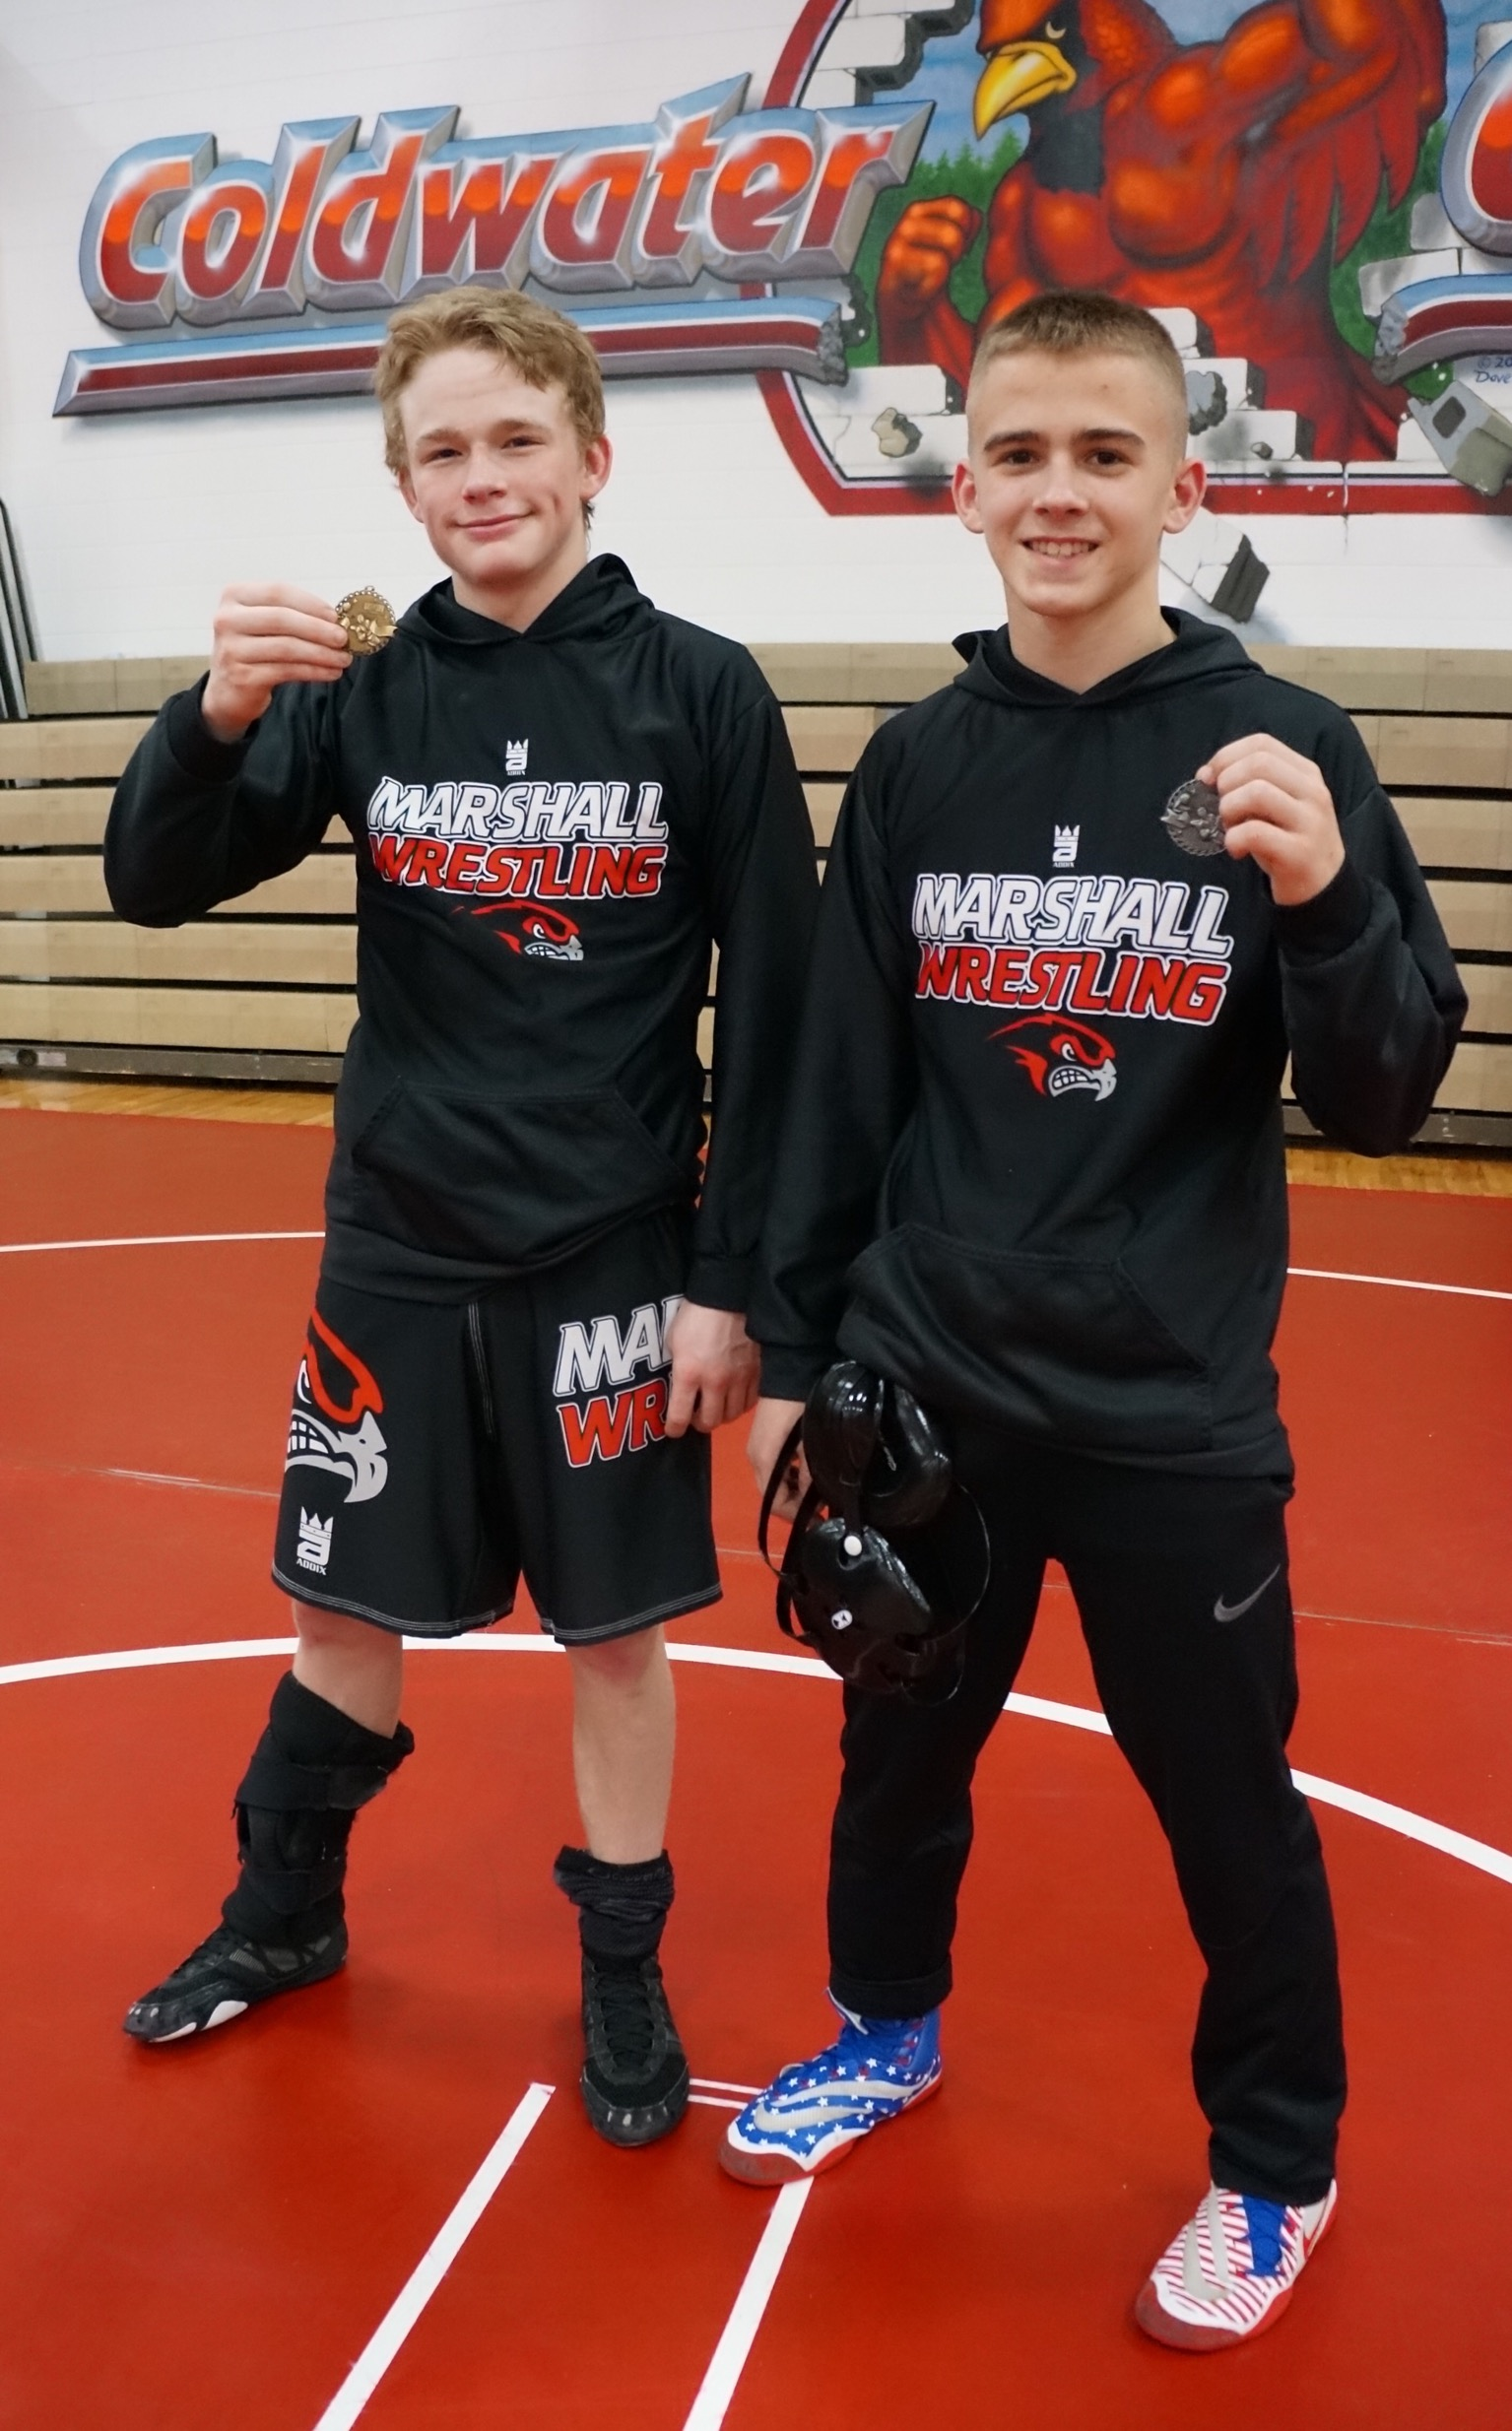 Marshall wrestlers travel to Coldwater